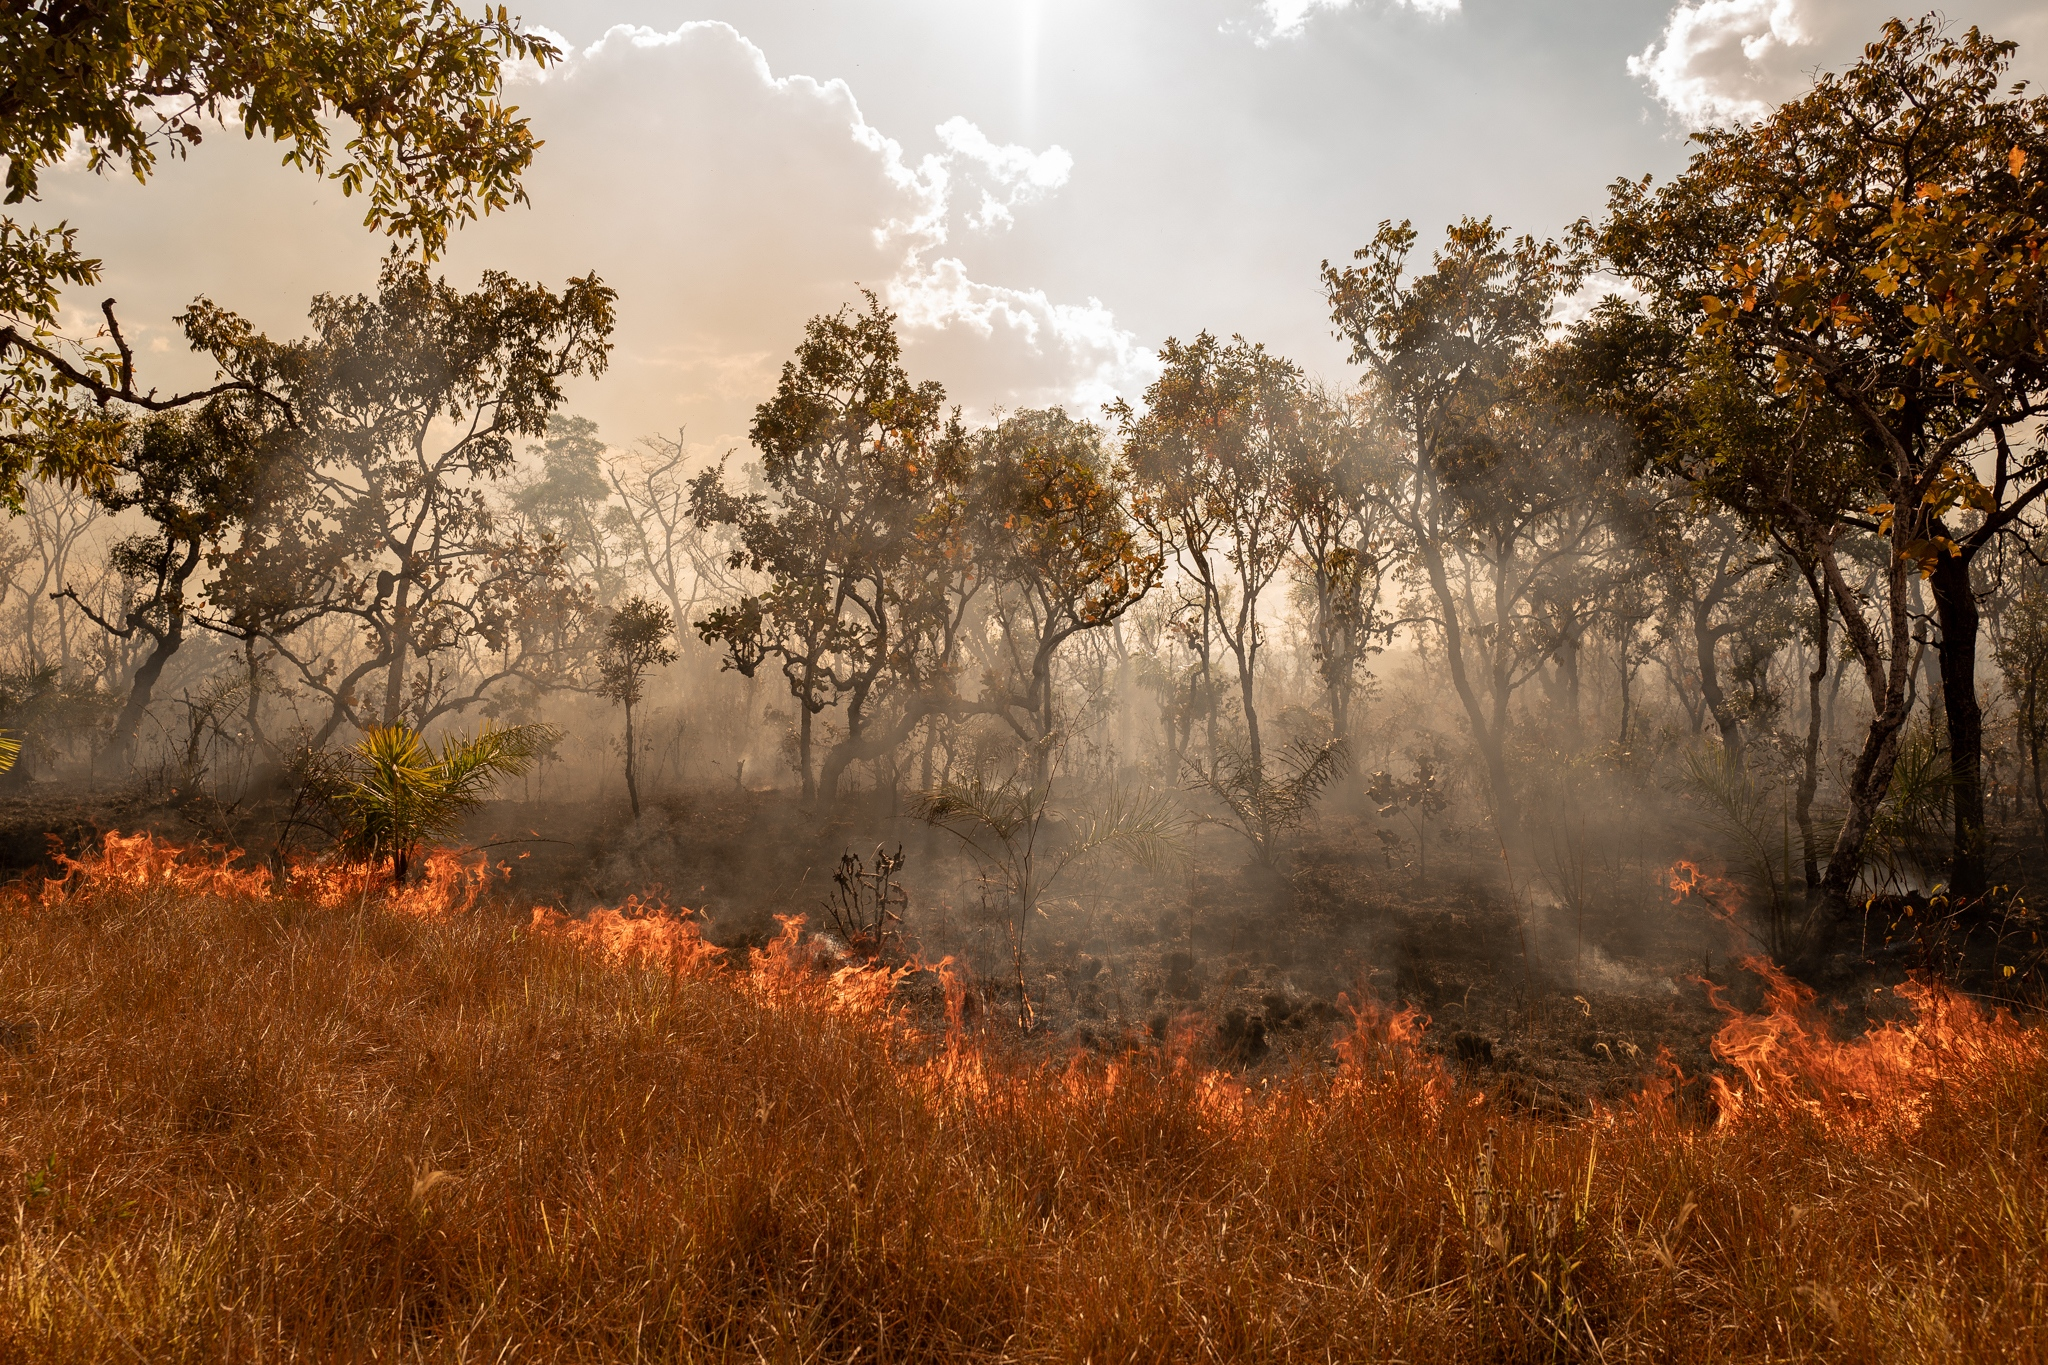 In the Cerrado biome (the second largest in South America) forest fires are common because of extreme heat and also triggered by criminals who wish to use space for planting soybeans and raising animals.